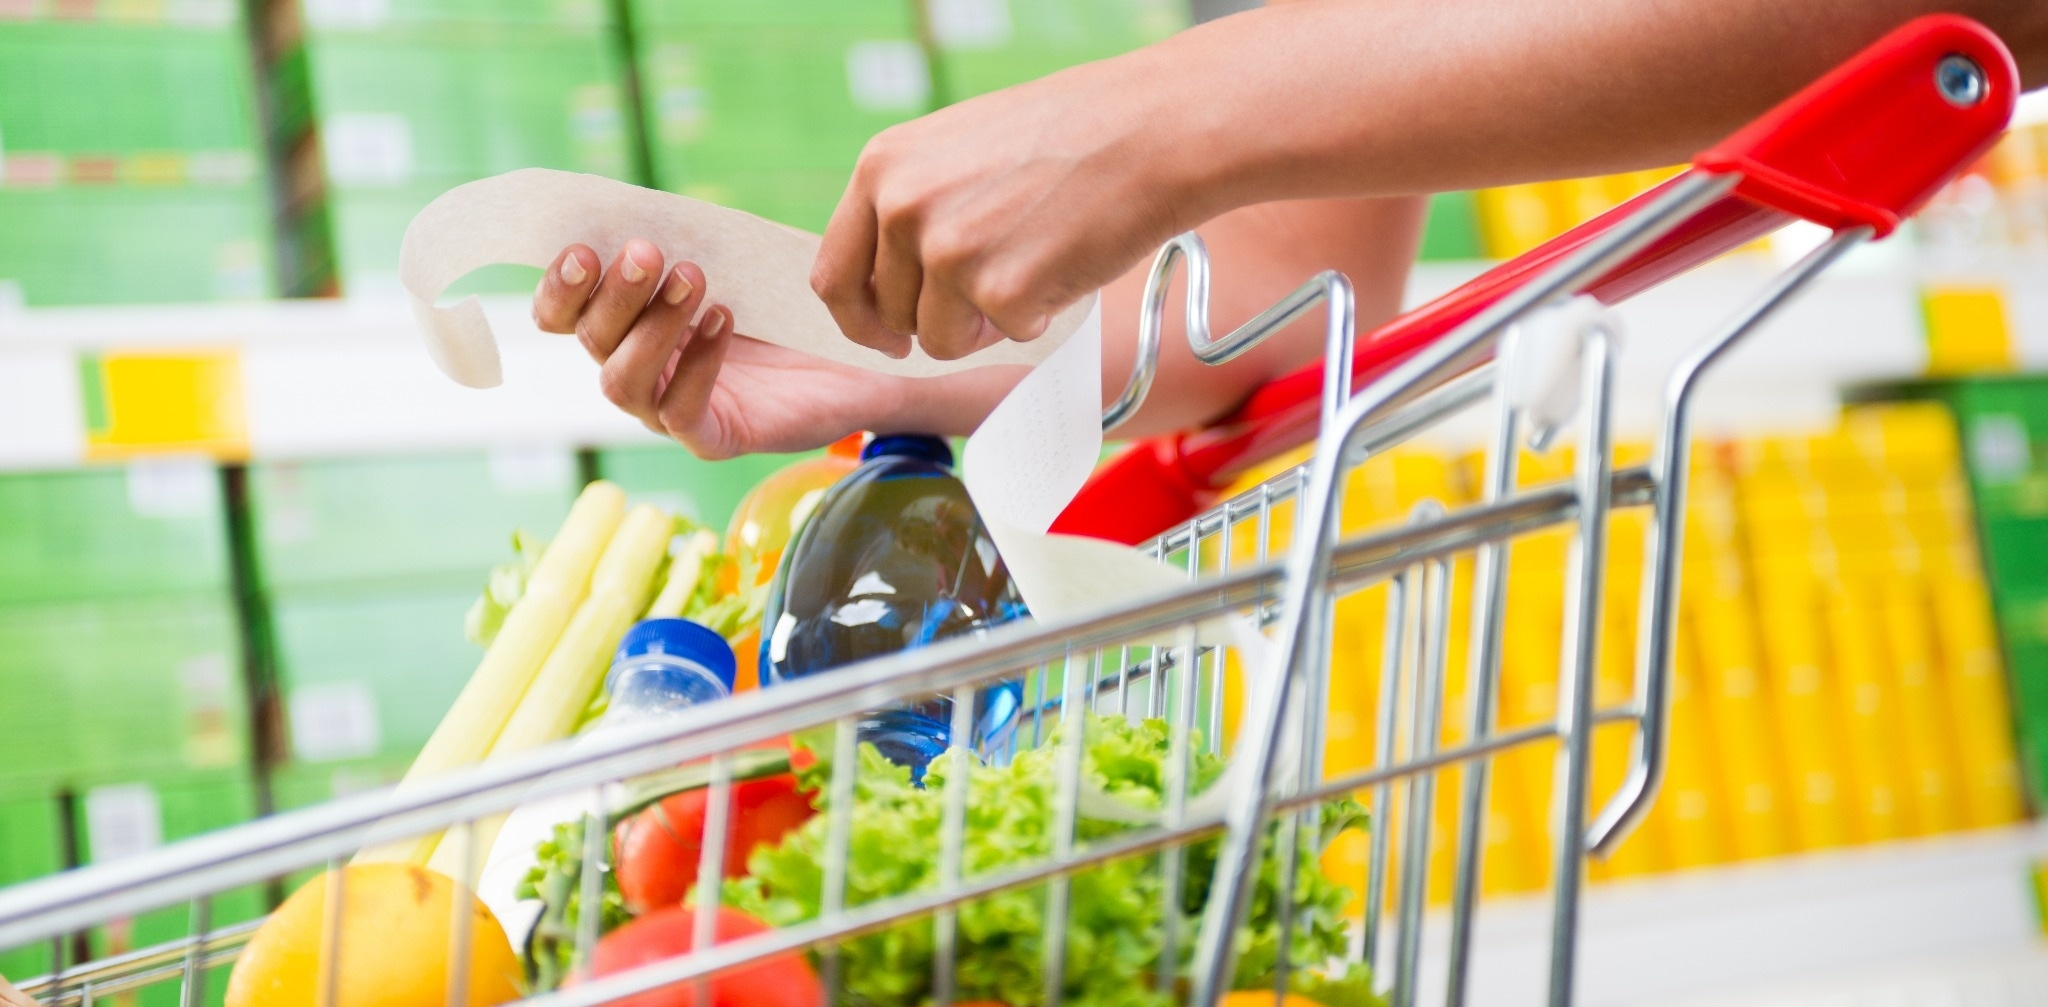 9 Easy Ways to Save Money at Safeway